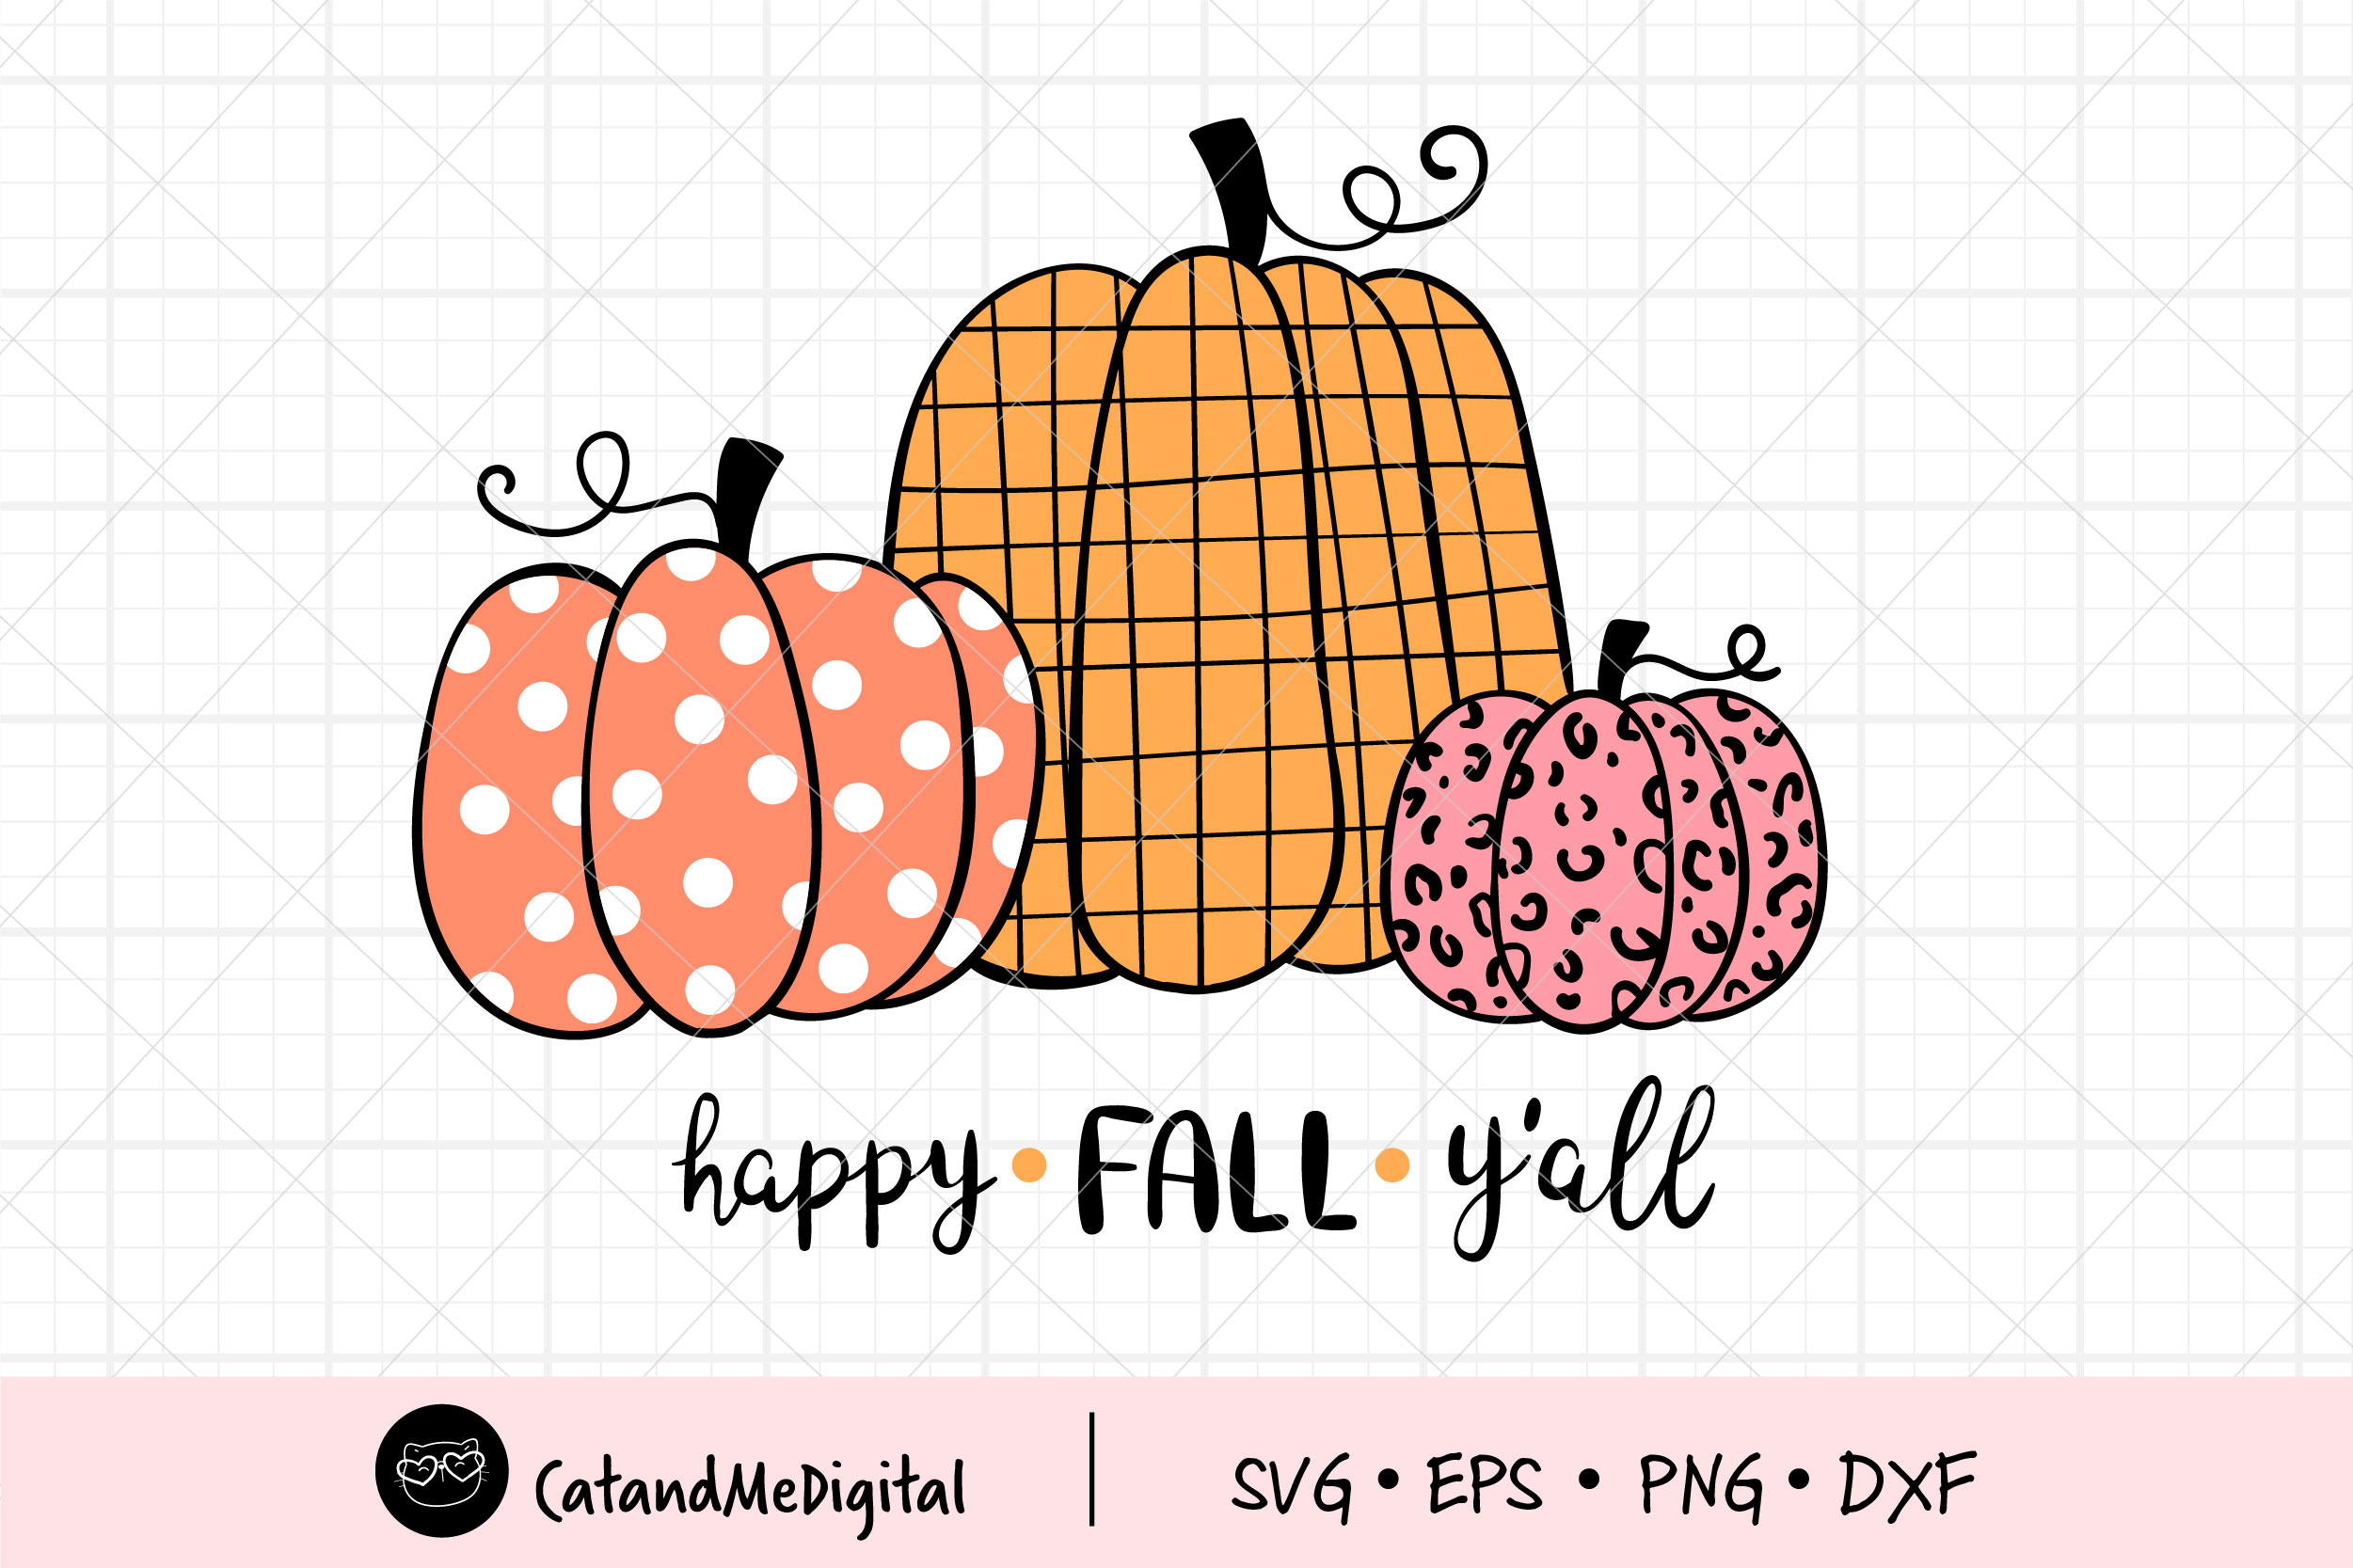 Happy Fall Y All Pumpkins Graphic By Catandme Creative Fabrica